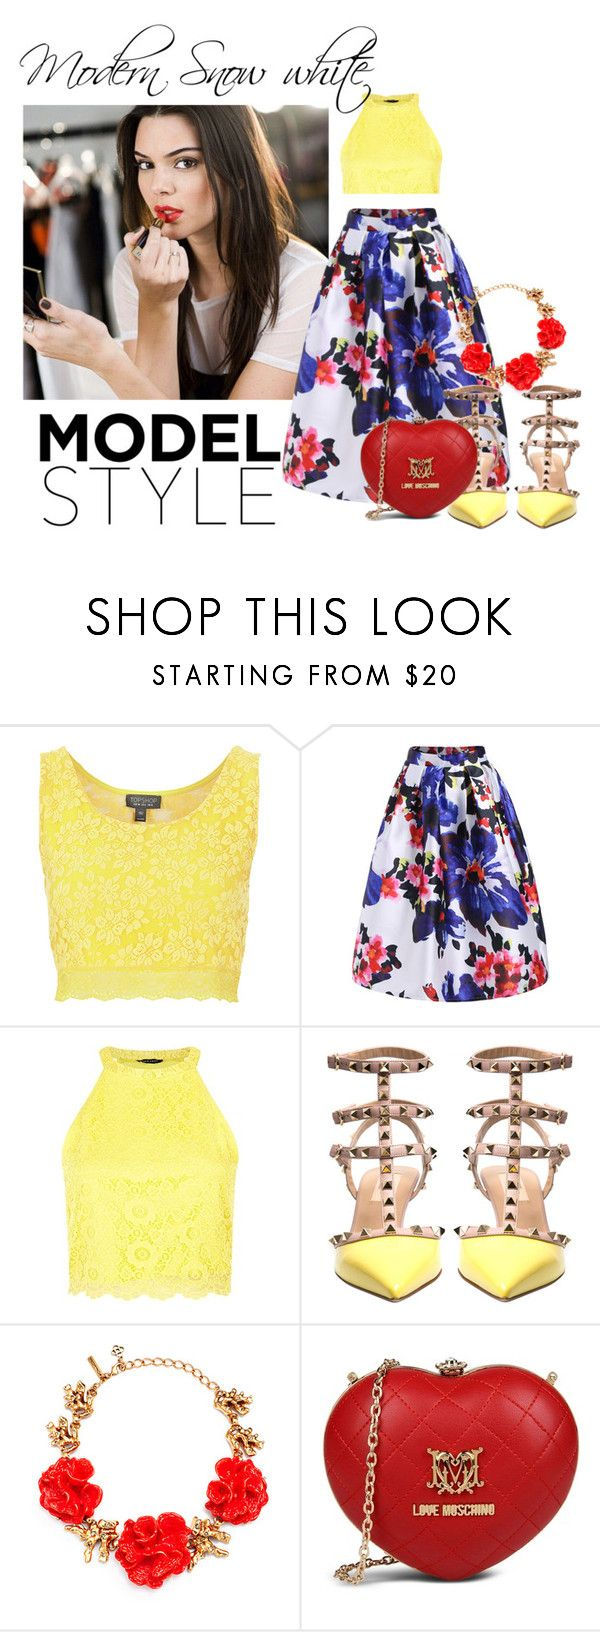 New Snow White by hacii on Polyvore featuring moda, Topshop, Valentino, Love Moschino, Oscar de la Renta, Estée Lauder, modern, disney, snowwhite and kendalljenner